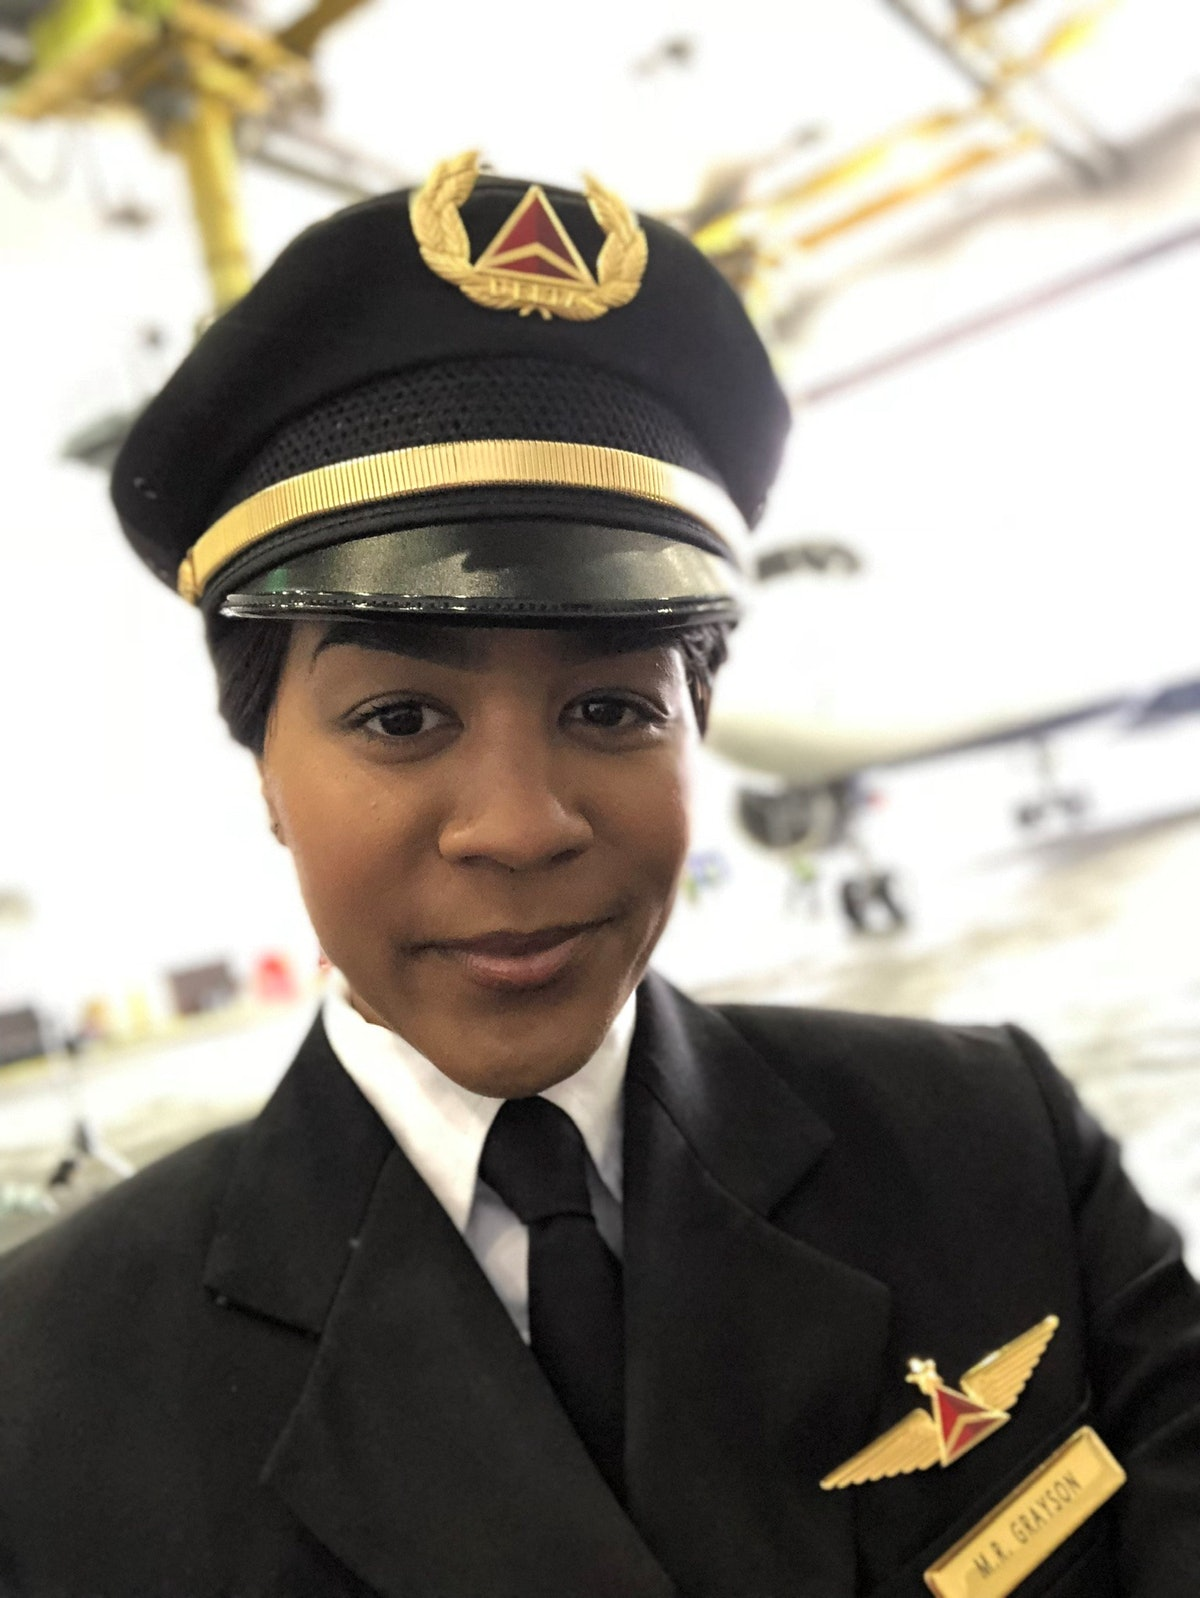 Grayson has been working as a pilot for nearly nine years.